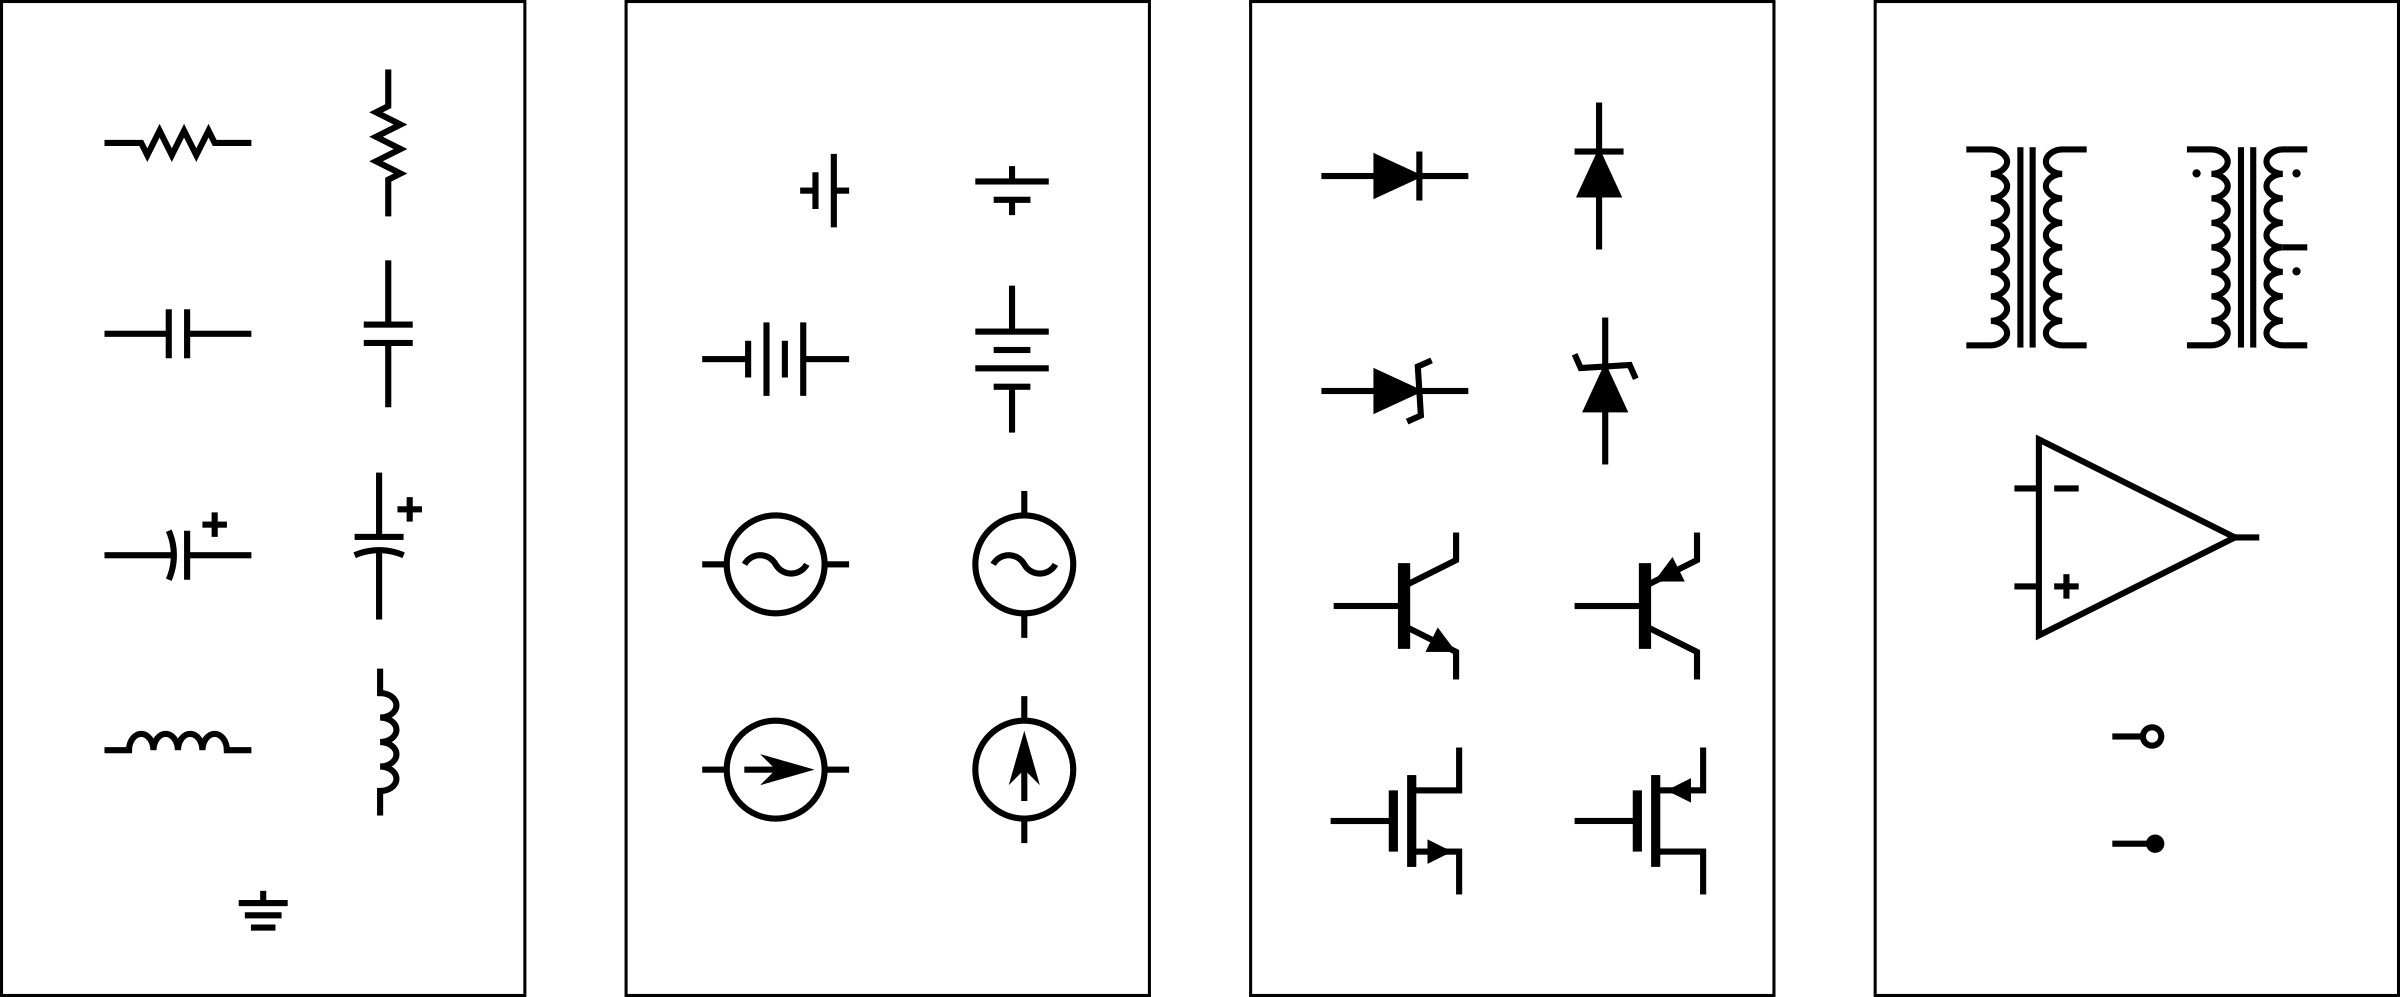 Symbol Of An Op Amp Schematic Wiring Diagrams Circuit For Led Clipart Symbols I Speaker